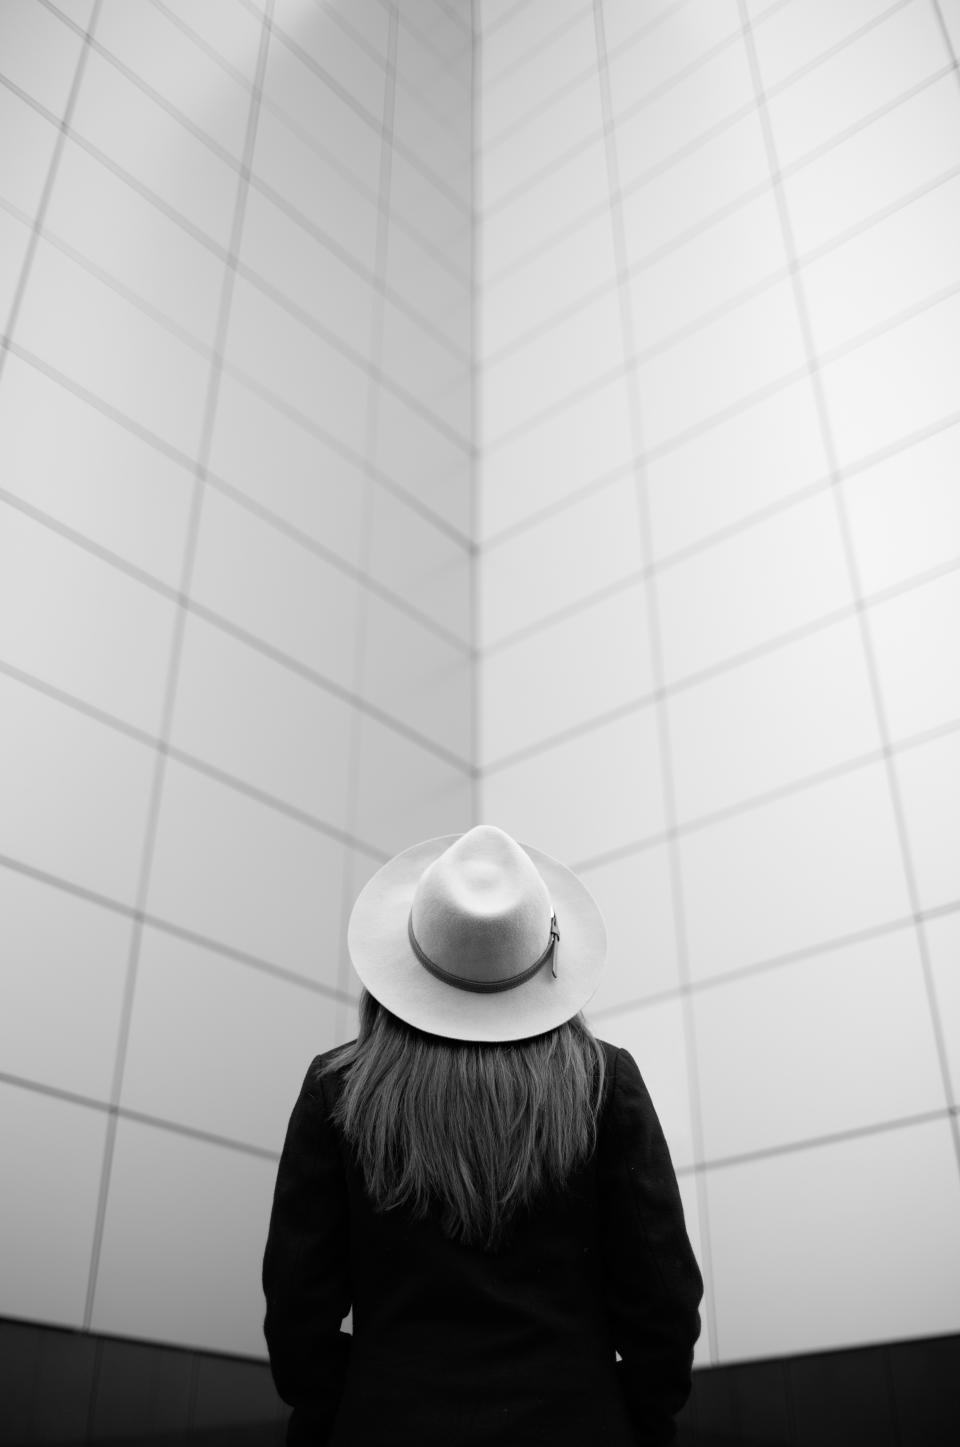 black and white people girl hat alone wall